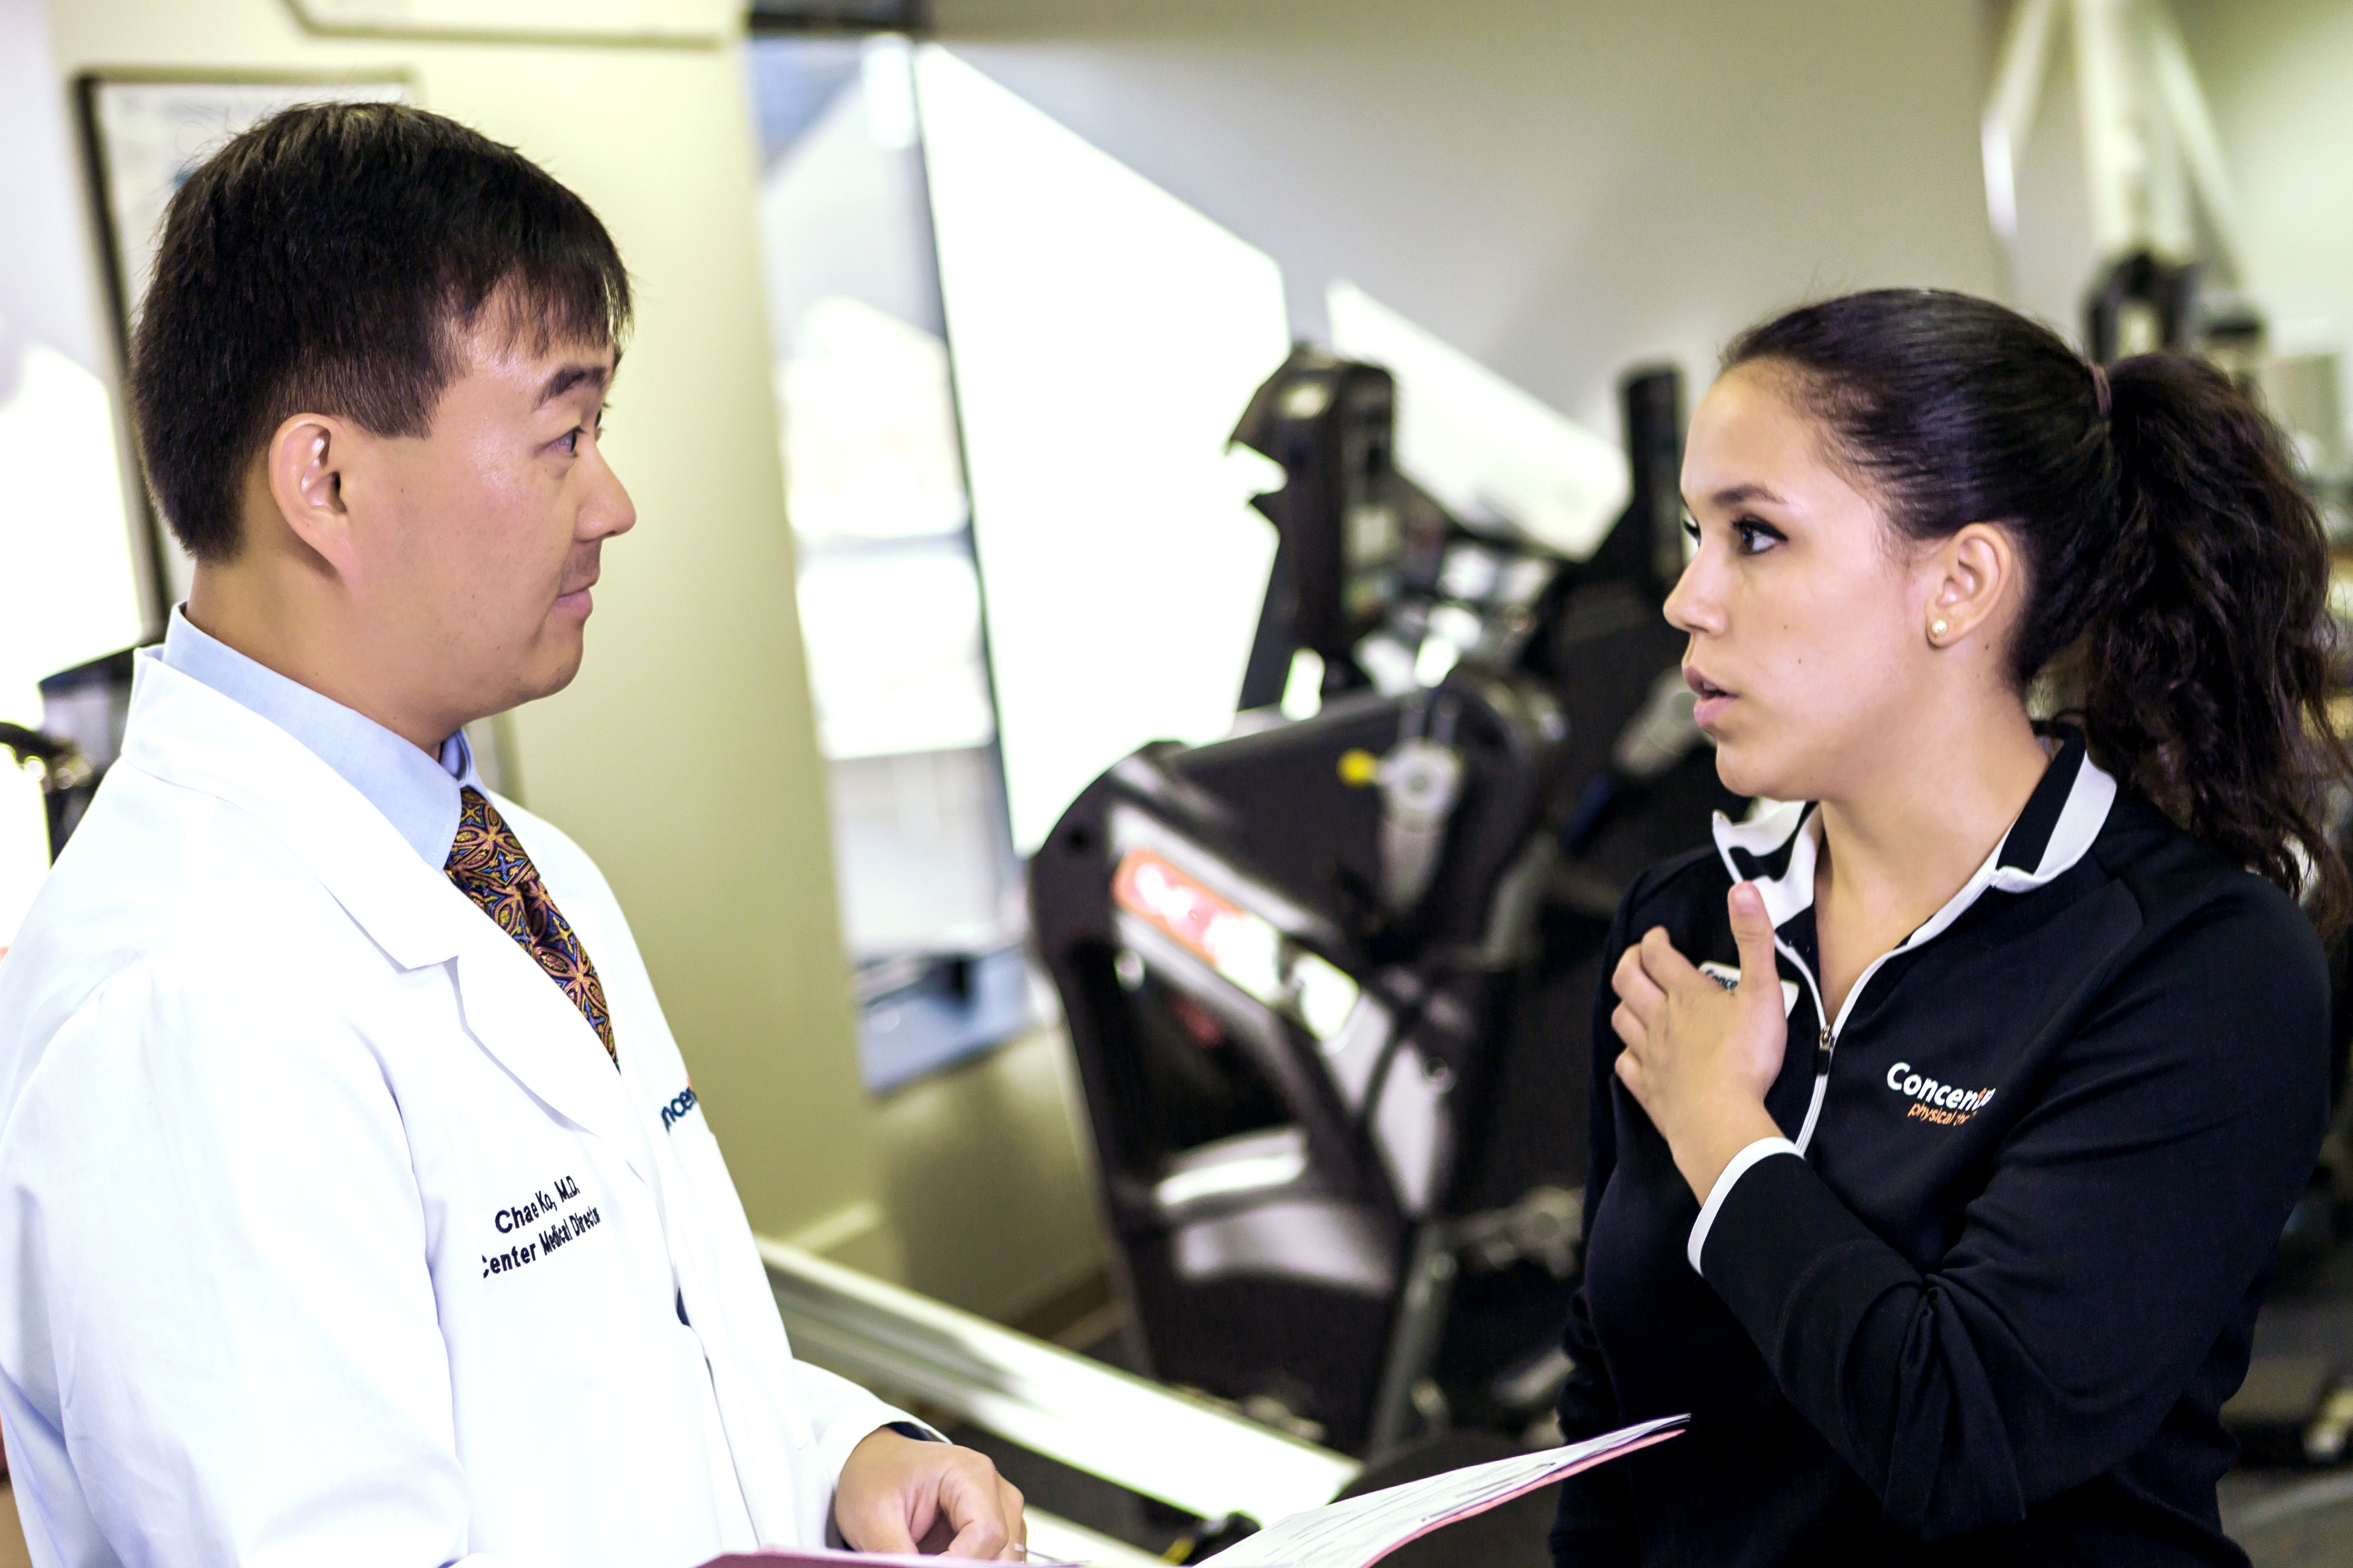 Occupational Medicine Doctor Talking to Trainer